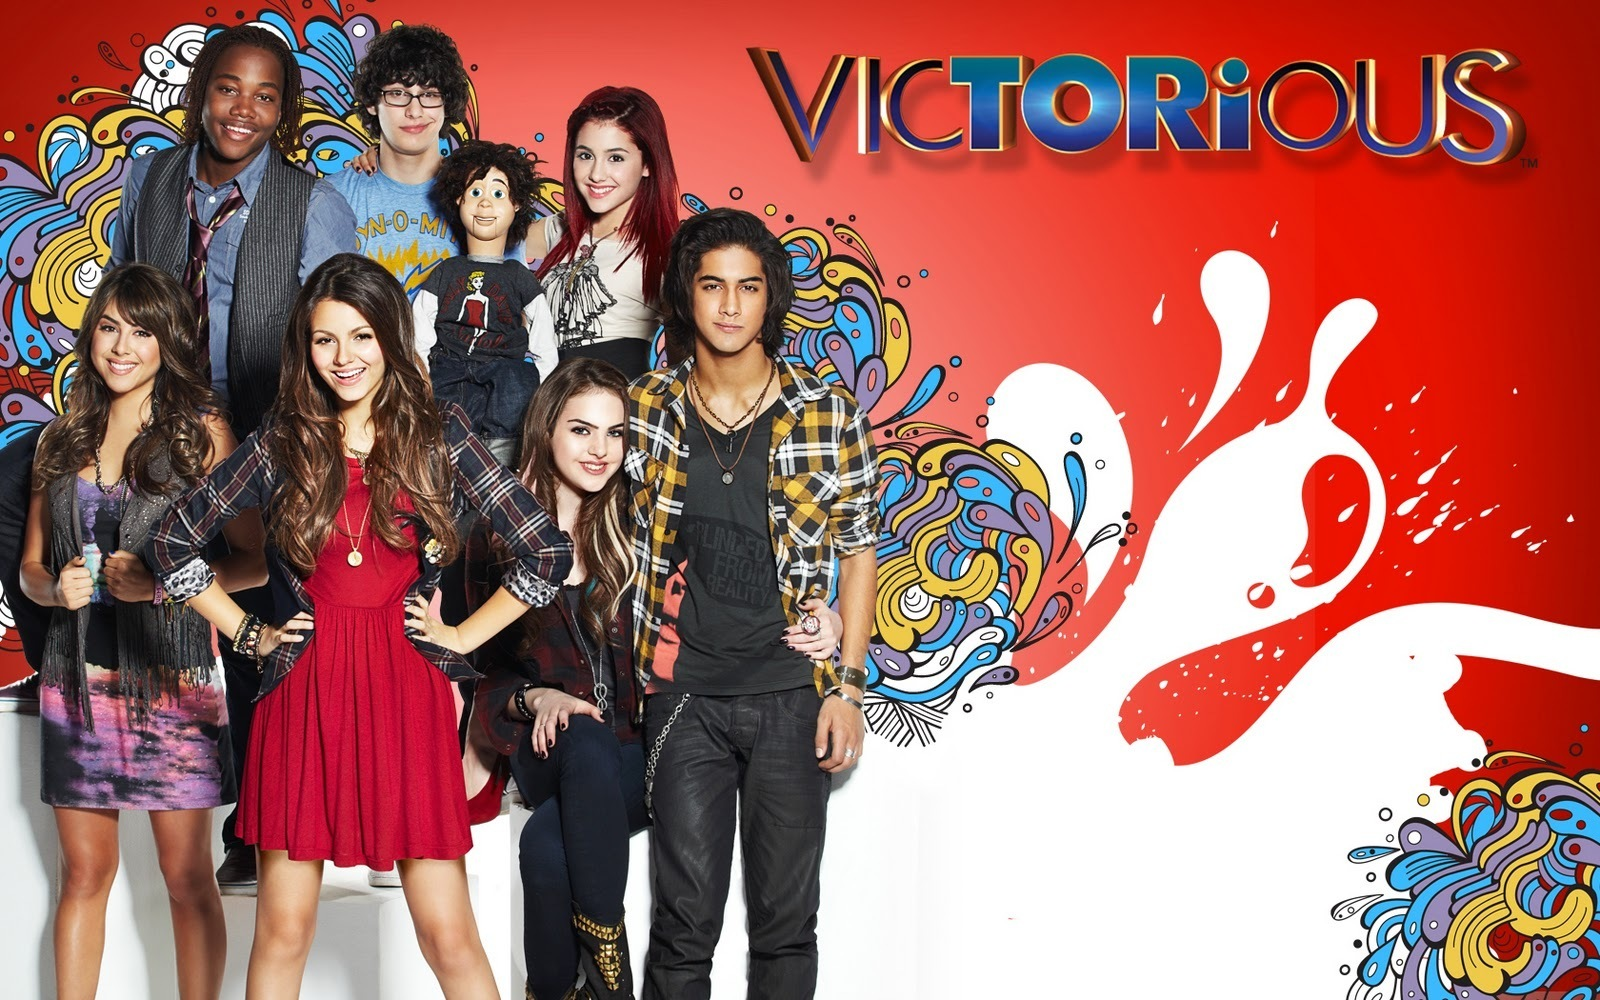 Victorious-Cast-victorious-20032025-1600-1000.jpg